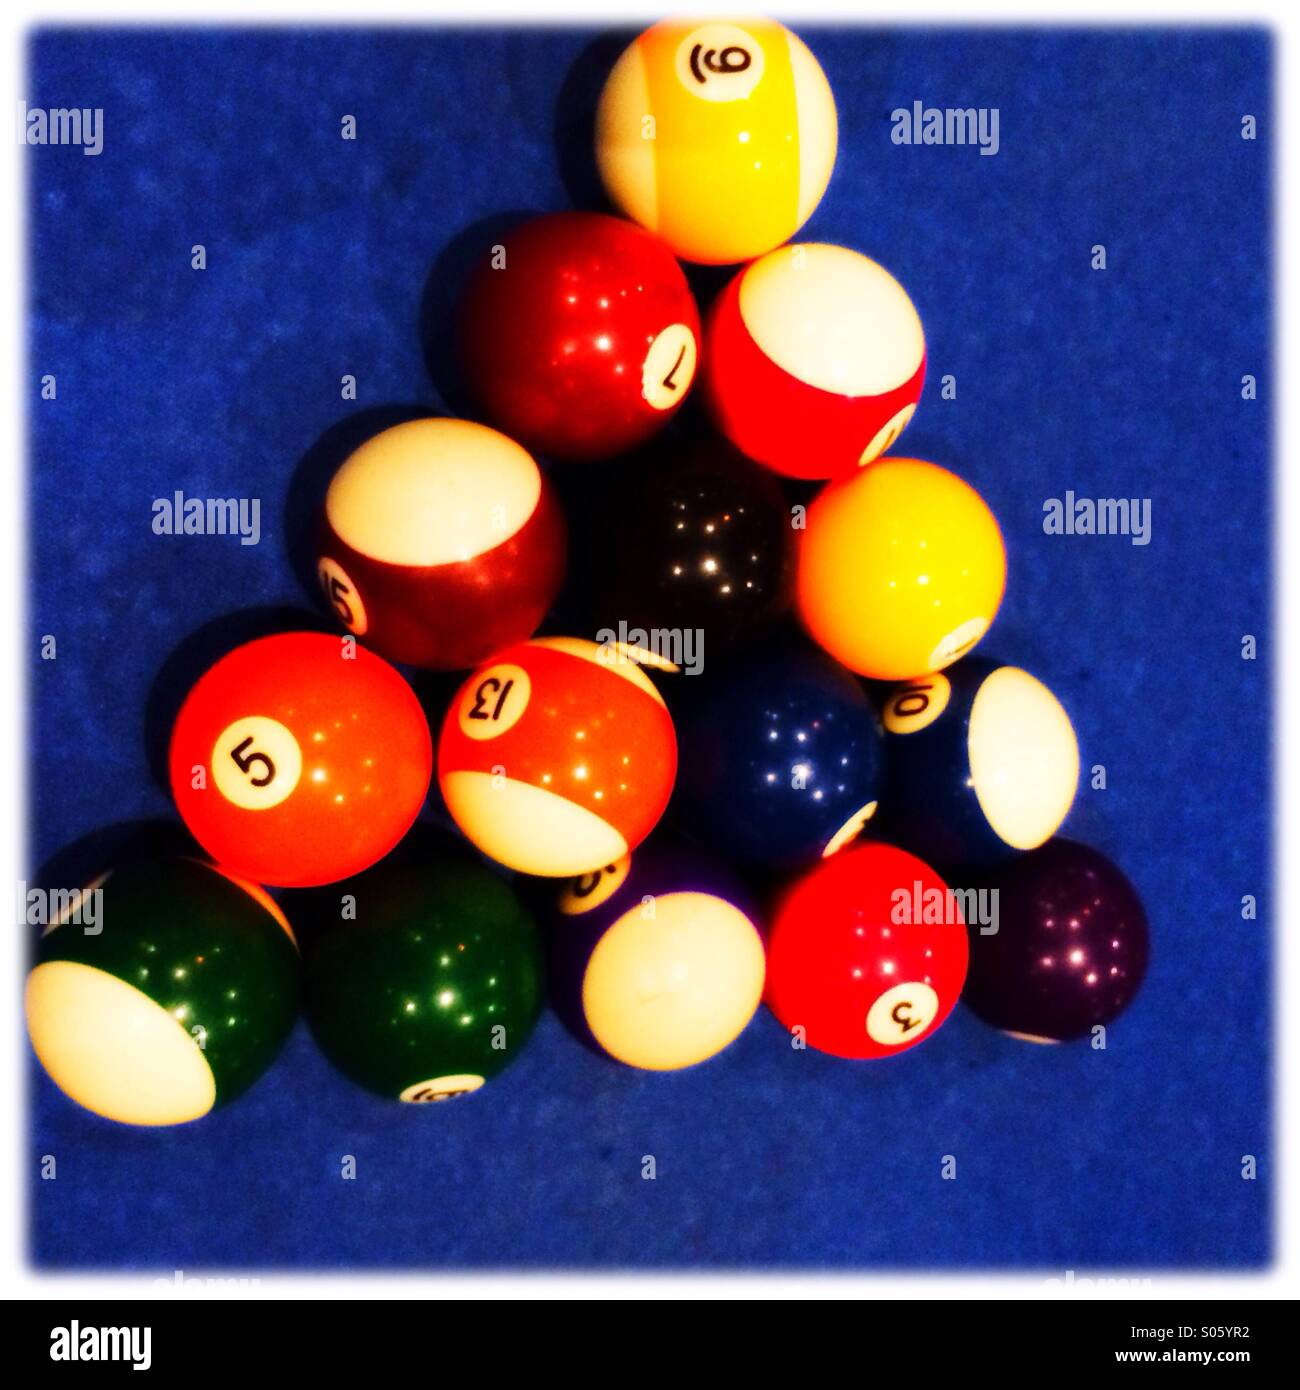 Pool table and balls at start of game - Stock Image